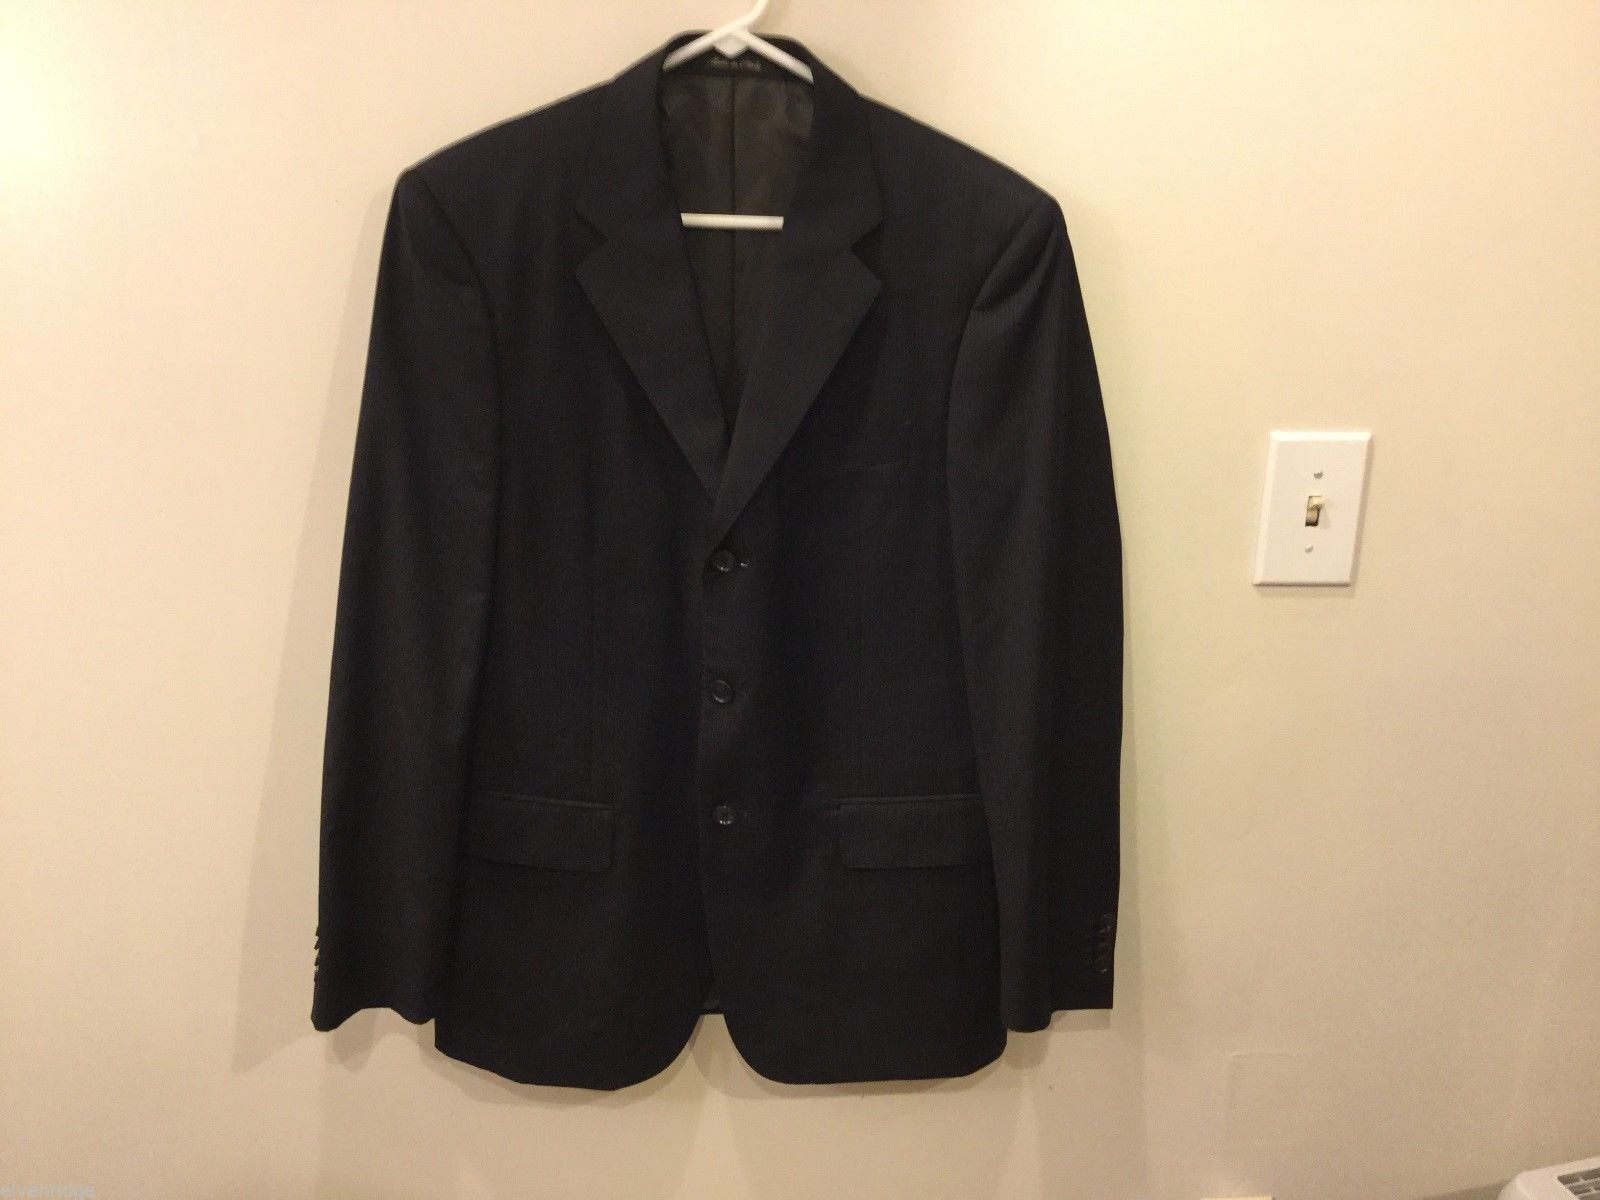 Mens Pinstriped Suit Jacket Made in Italy, See Measurements